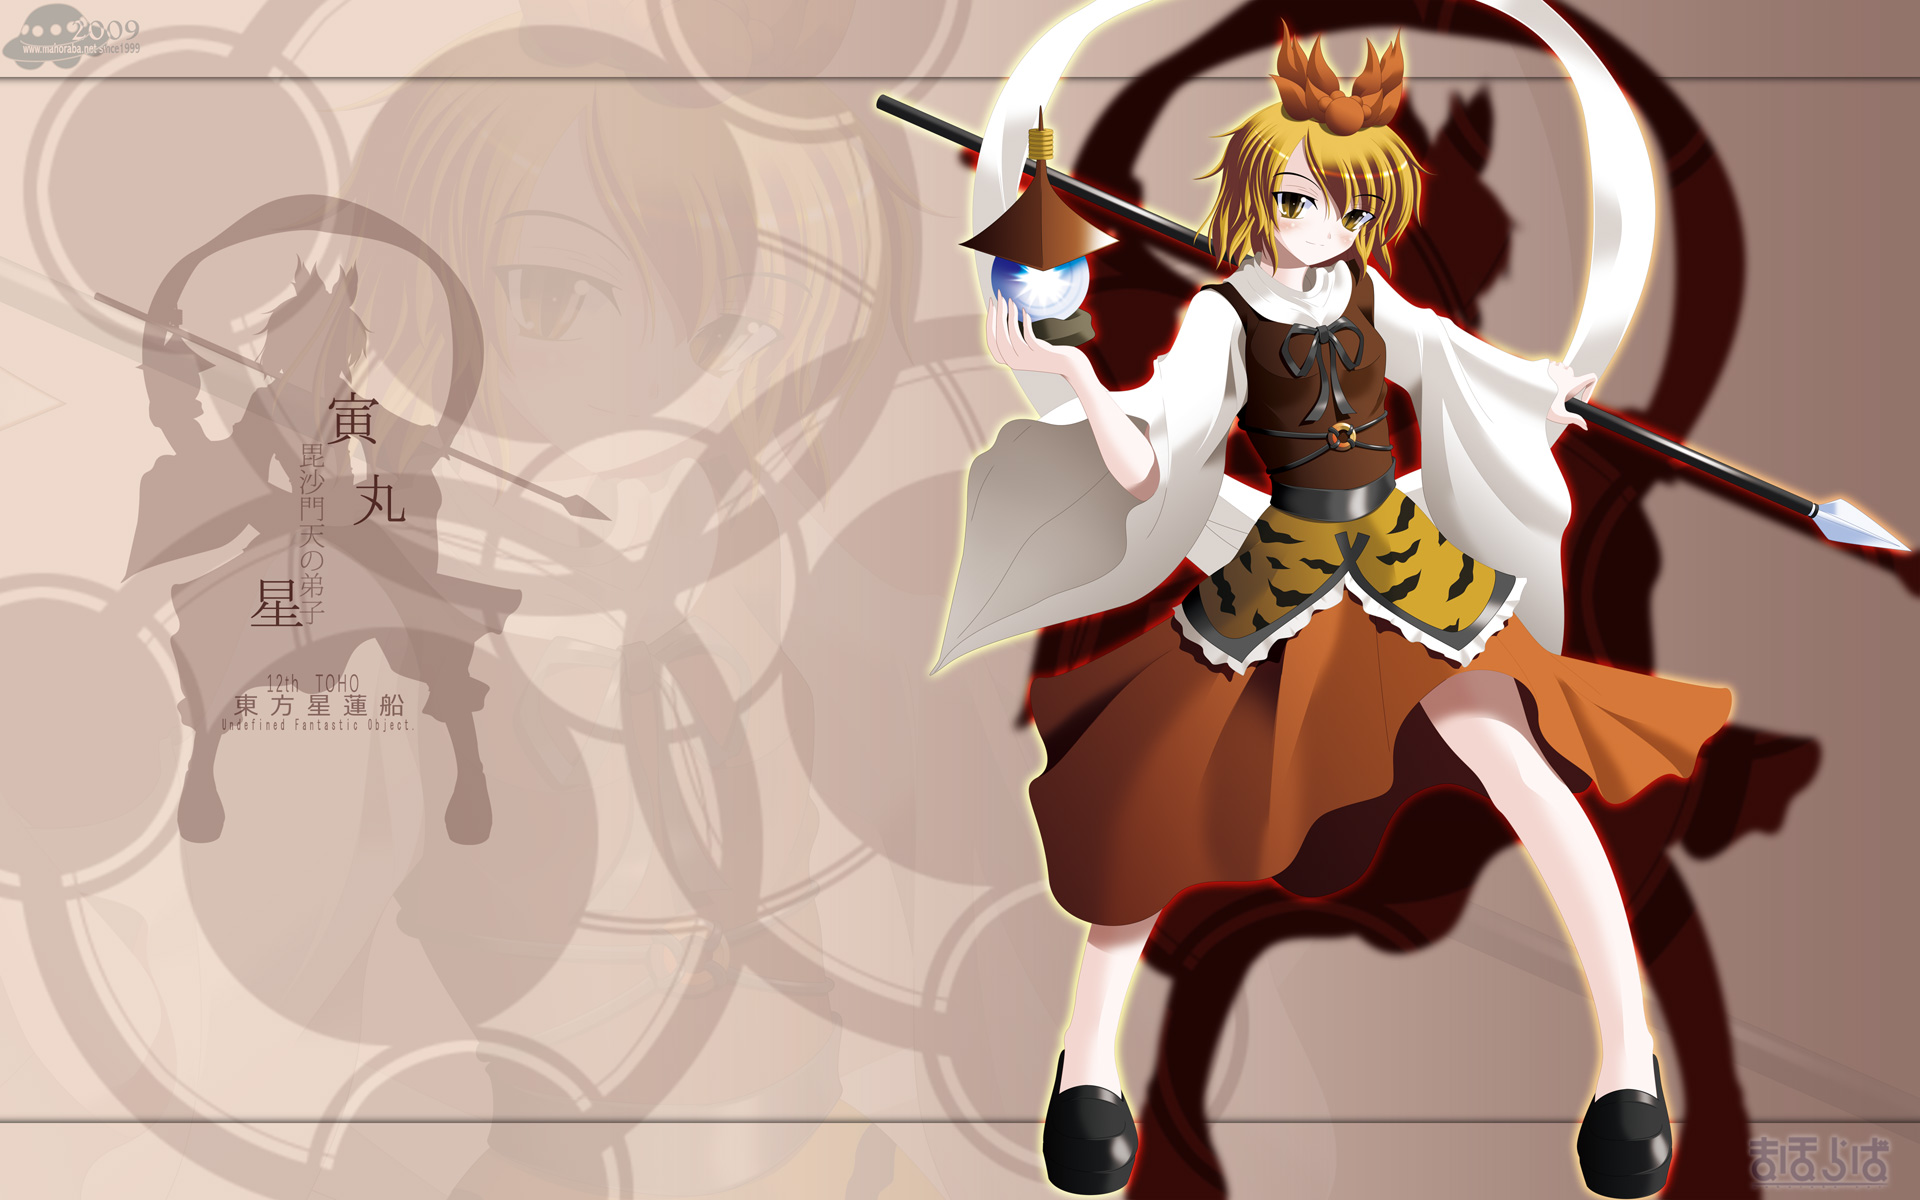 brown_eyes brown_hair short_hair side_b spear toramaru_shou touhou weapon